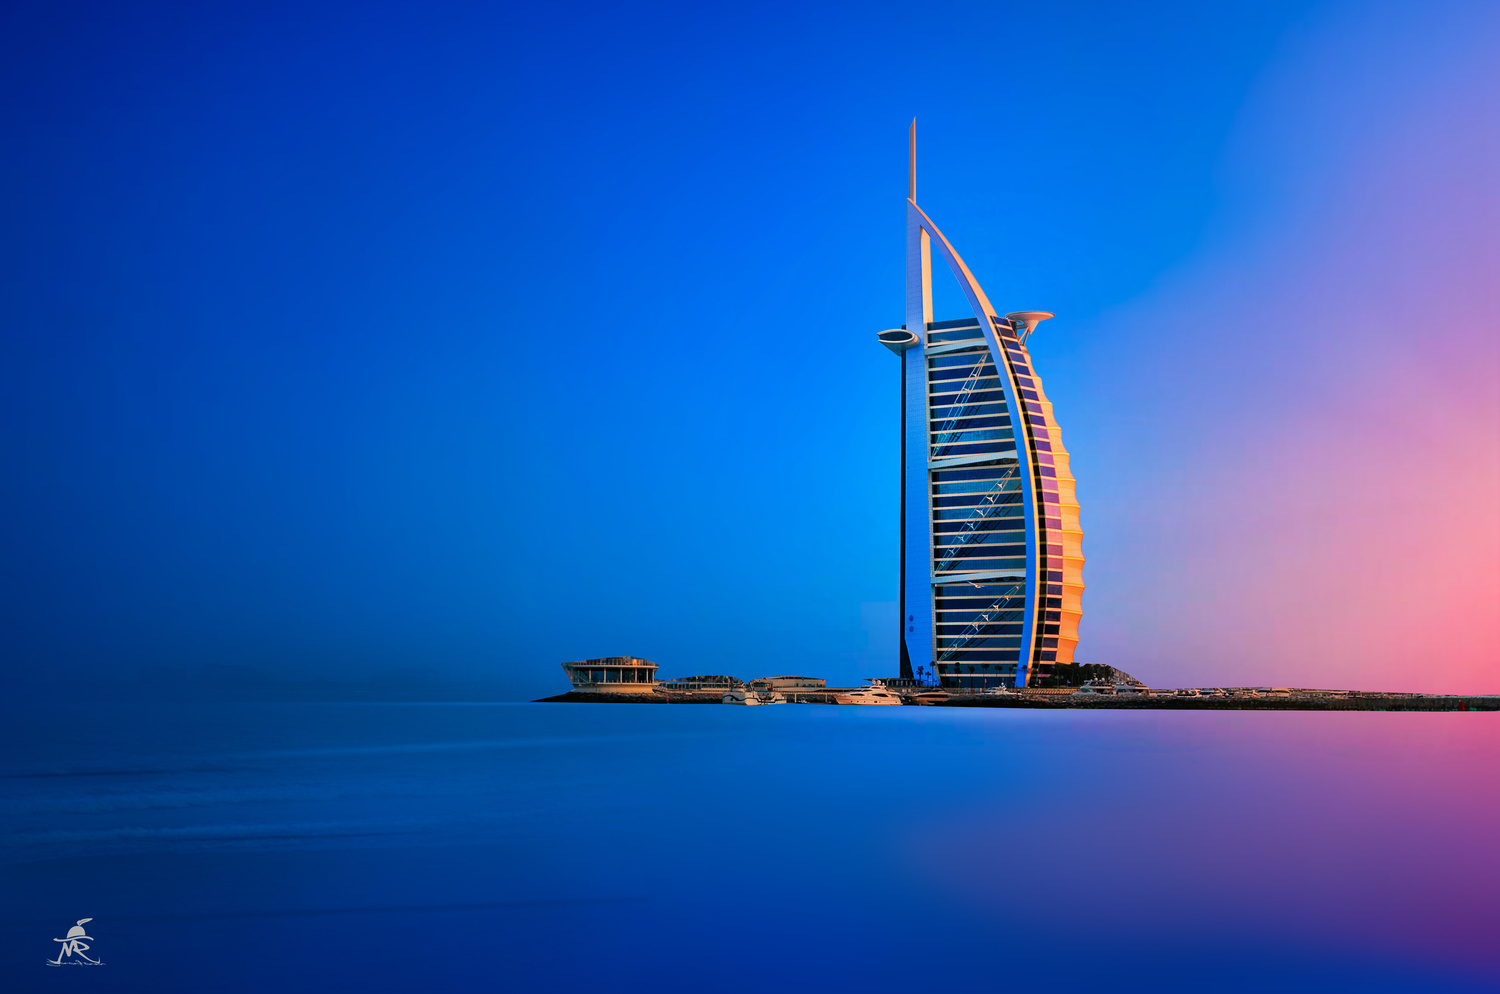 Burj Al Arab by Saajan Manuvel